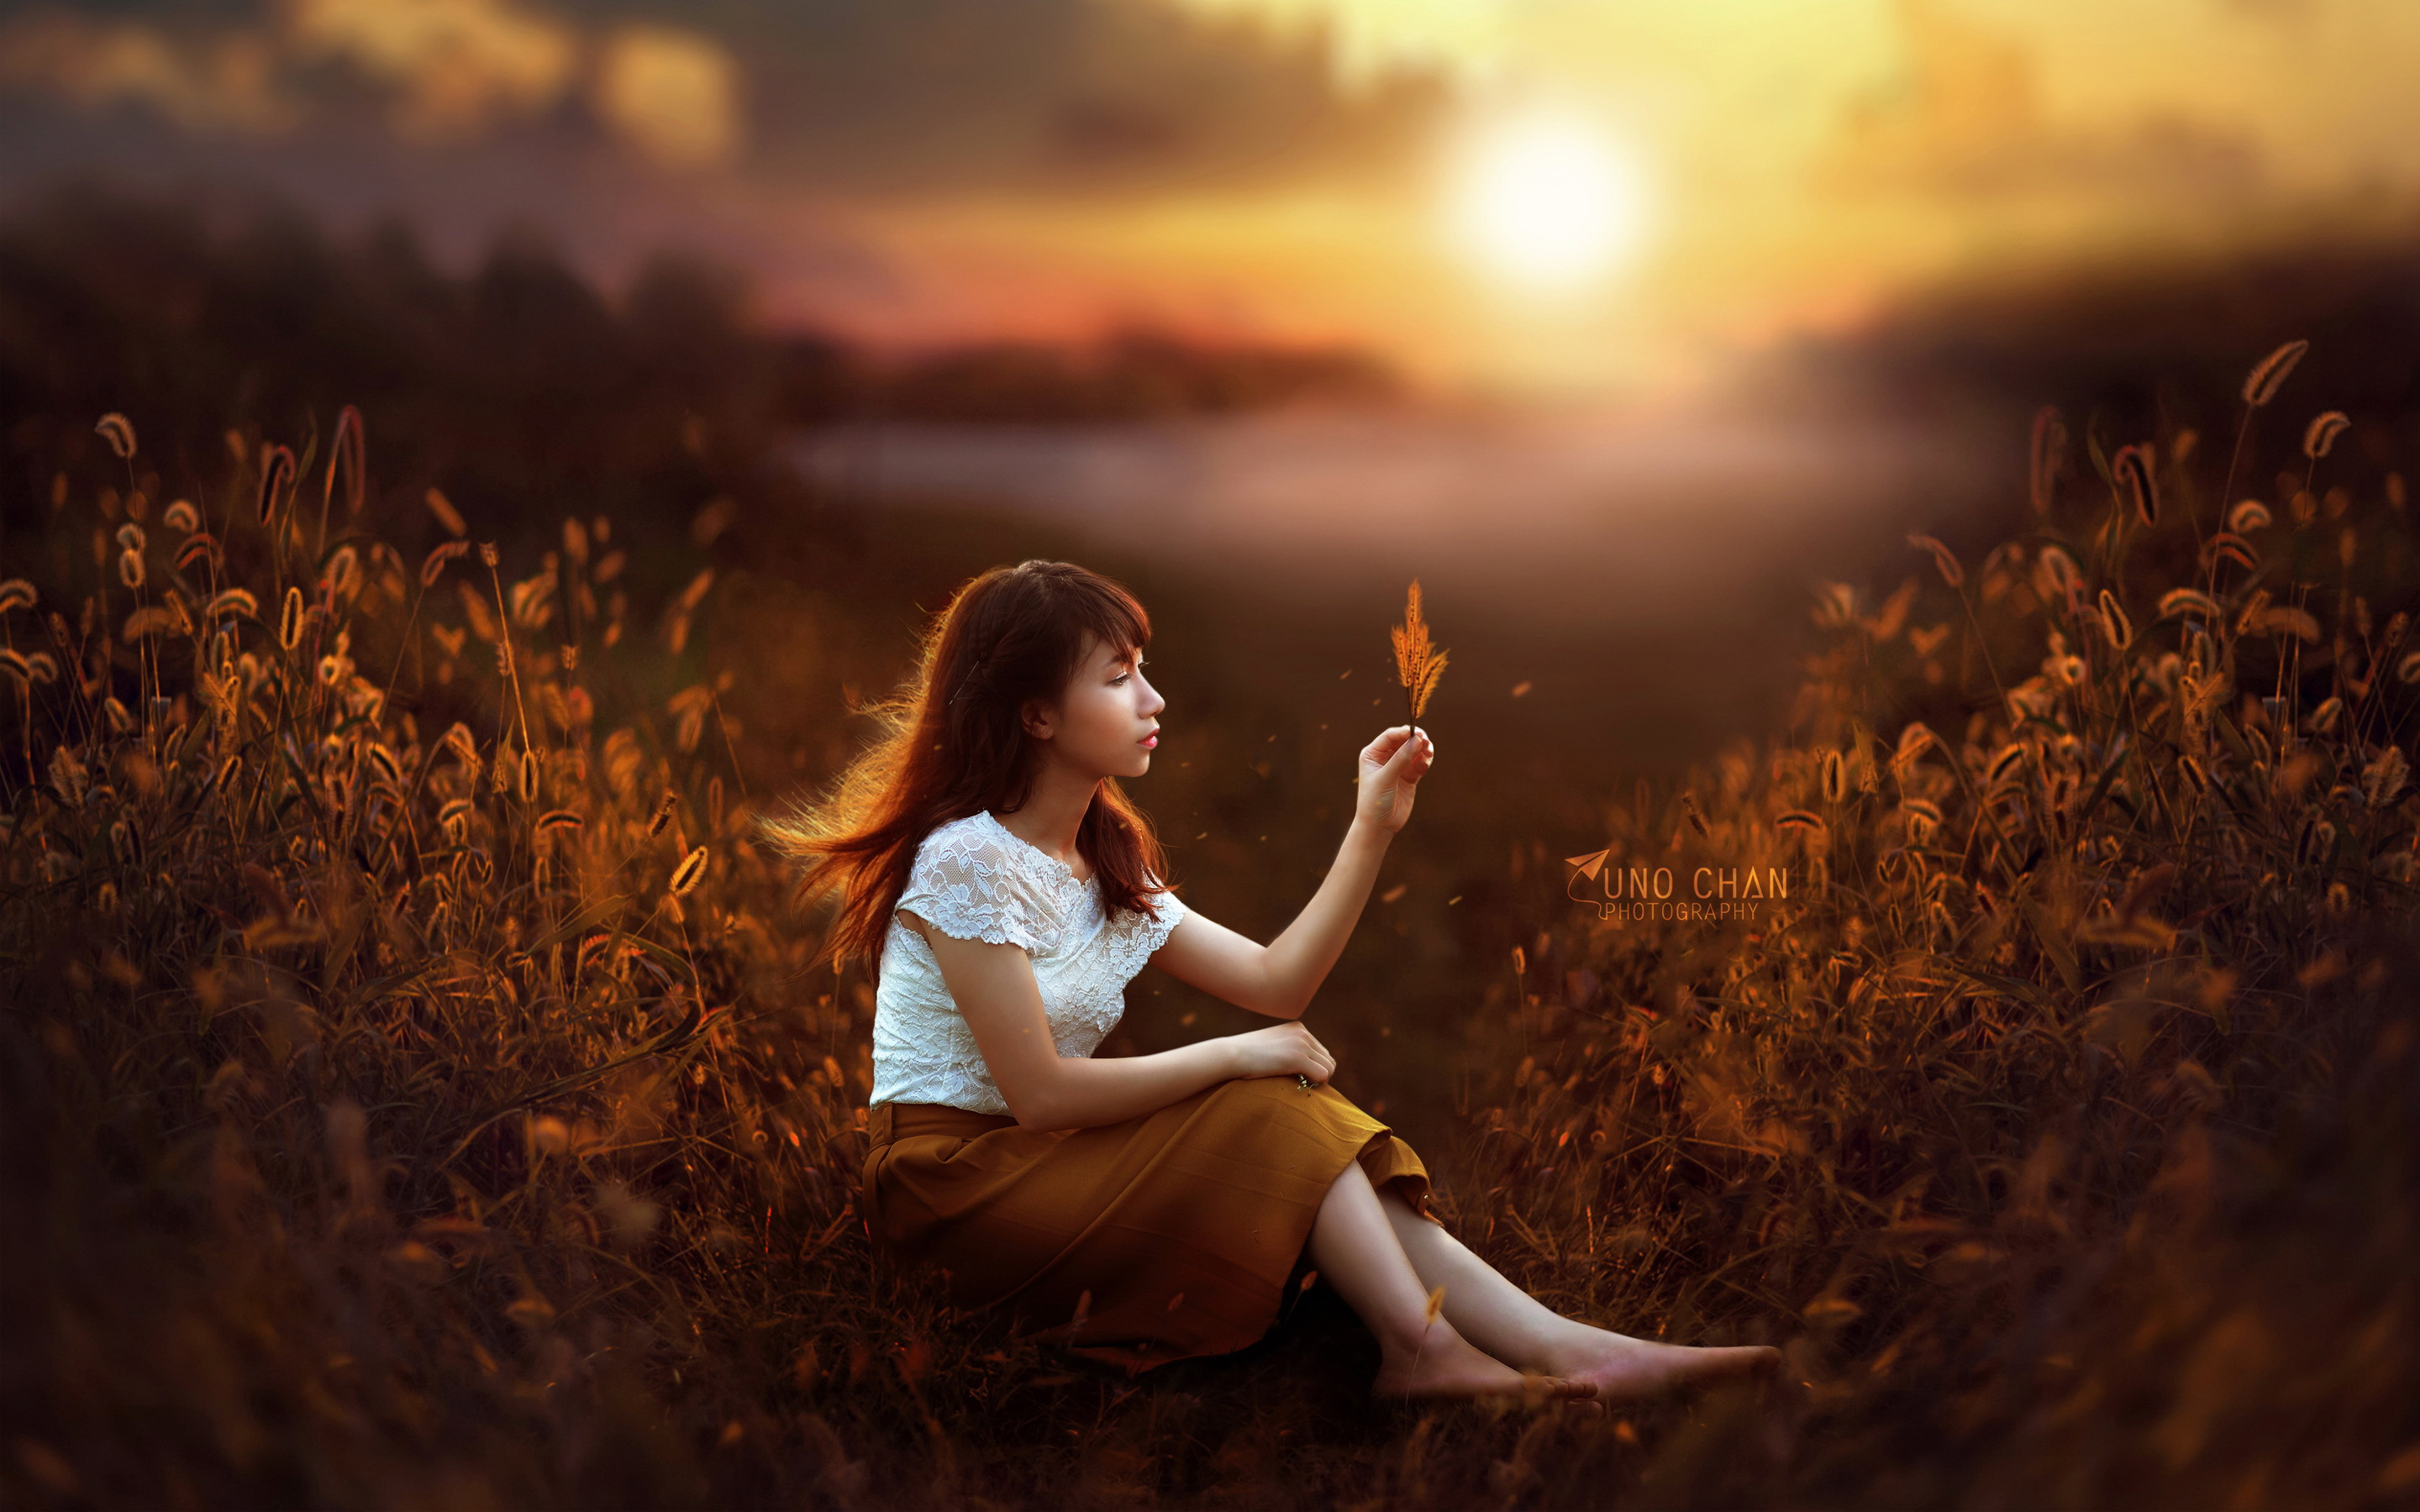 Sunset girl Fantasy7369517984 - Sunset girl Fantasy - sunset, Girl, Fantasy, Artwork